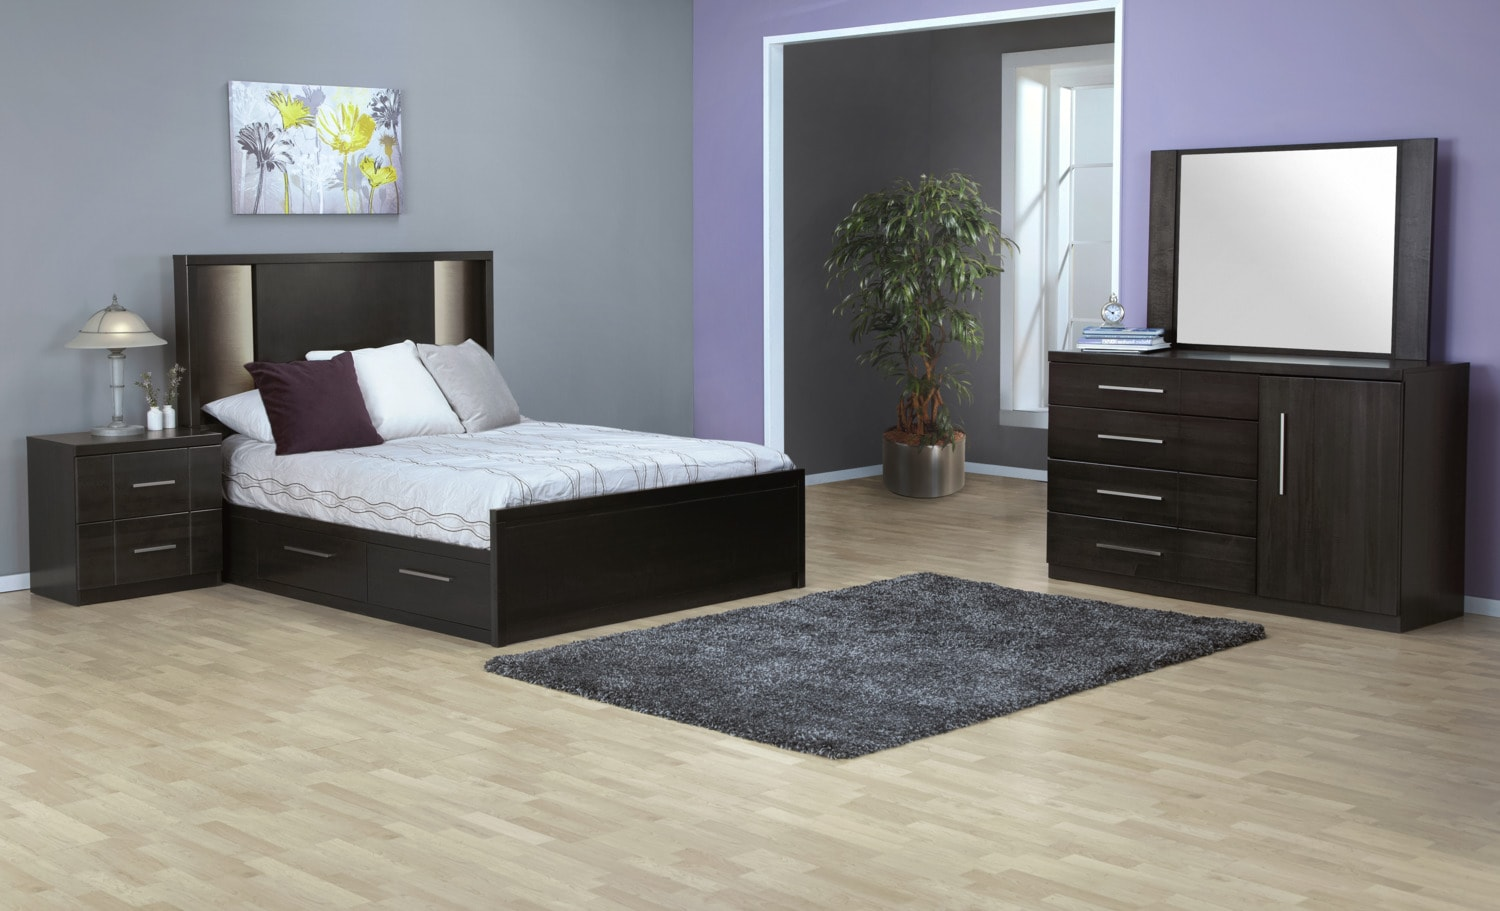 Seville 7-Piece Queen Storage Bedroom Set - Charcoal